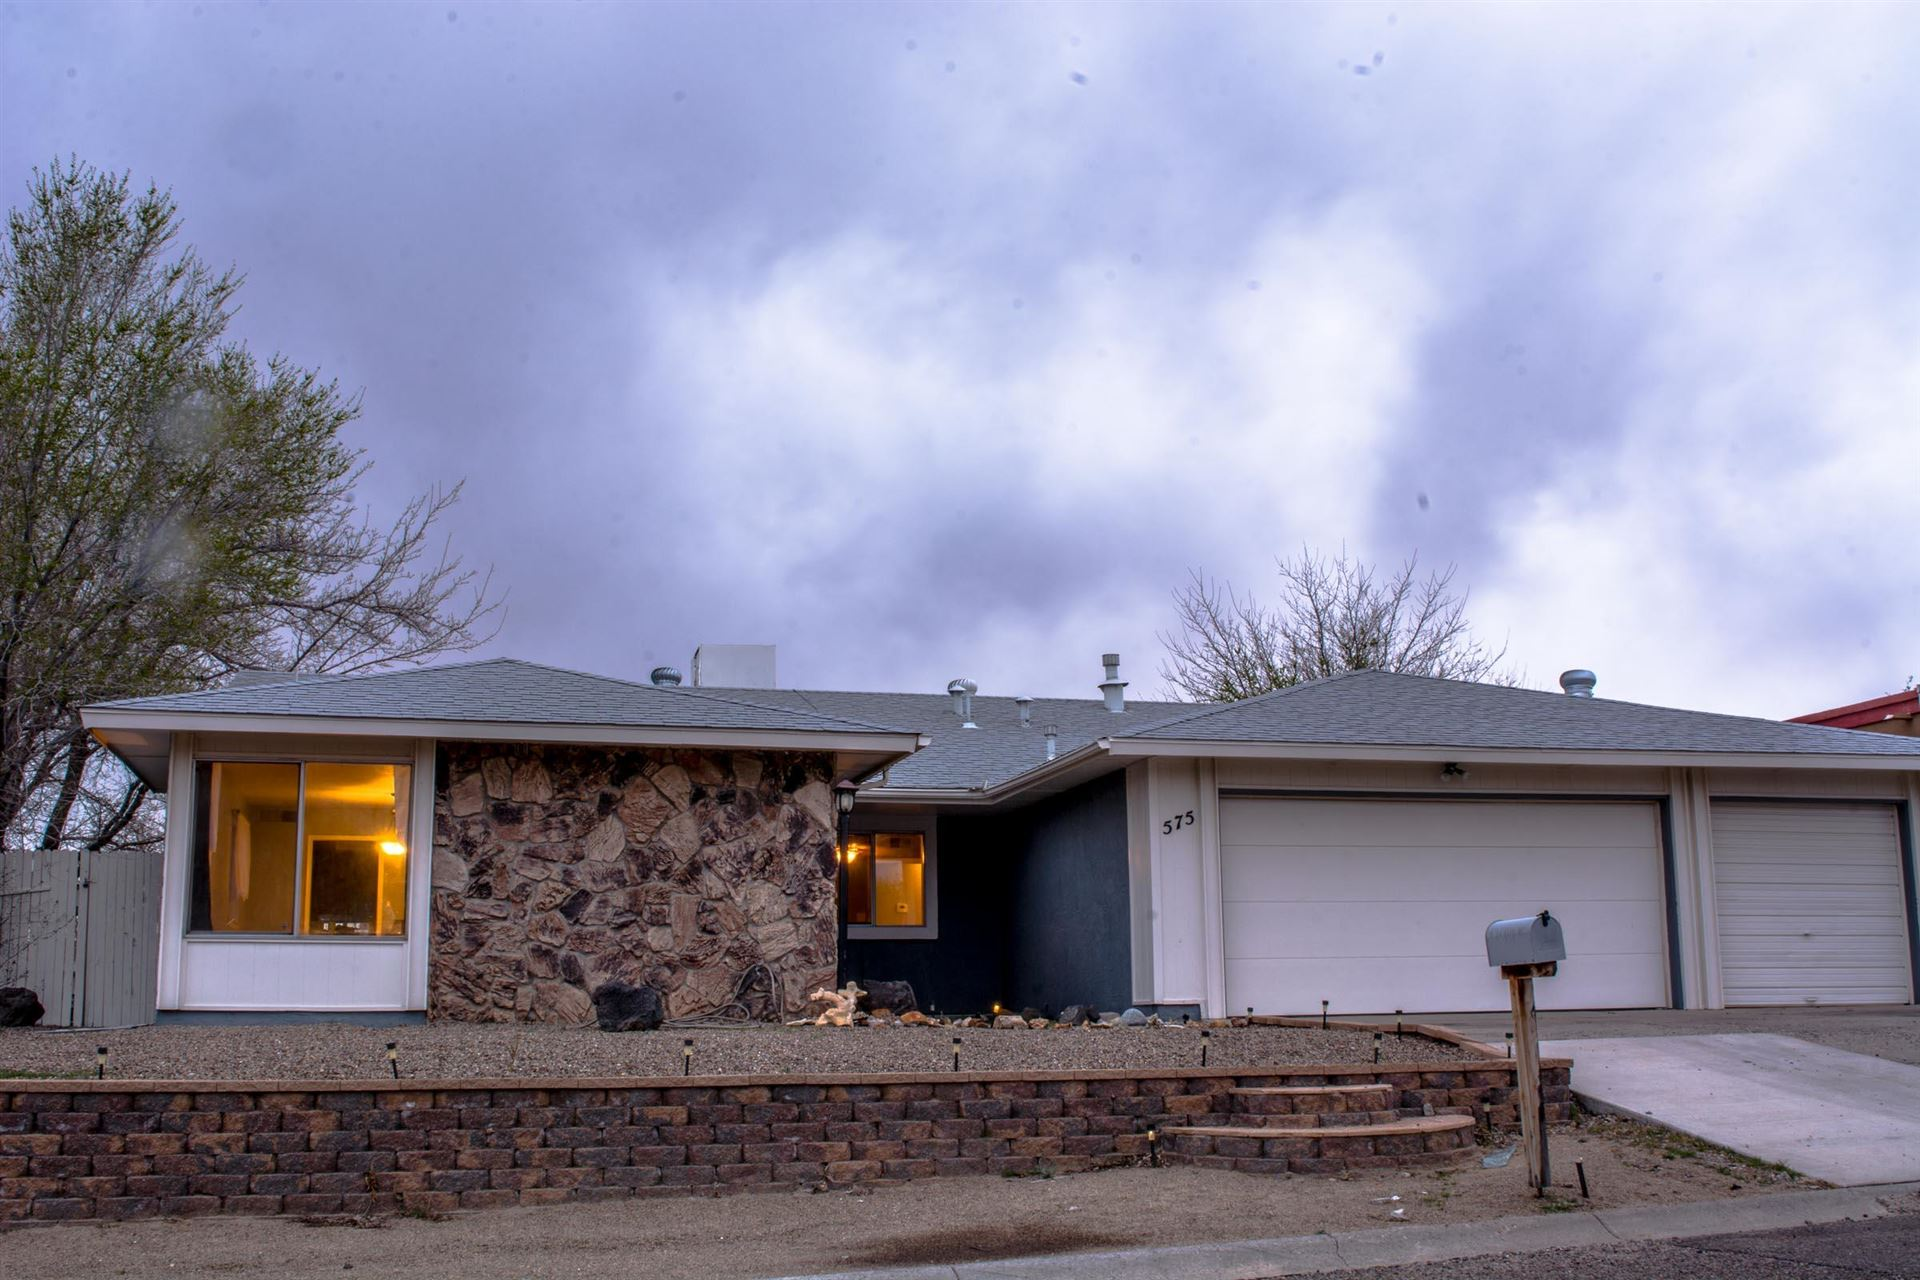 575 SILVER SADDLE Road SE, Rio Rancho, NM 87124 - #: 965403